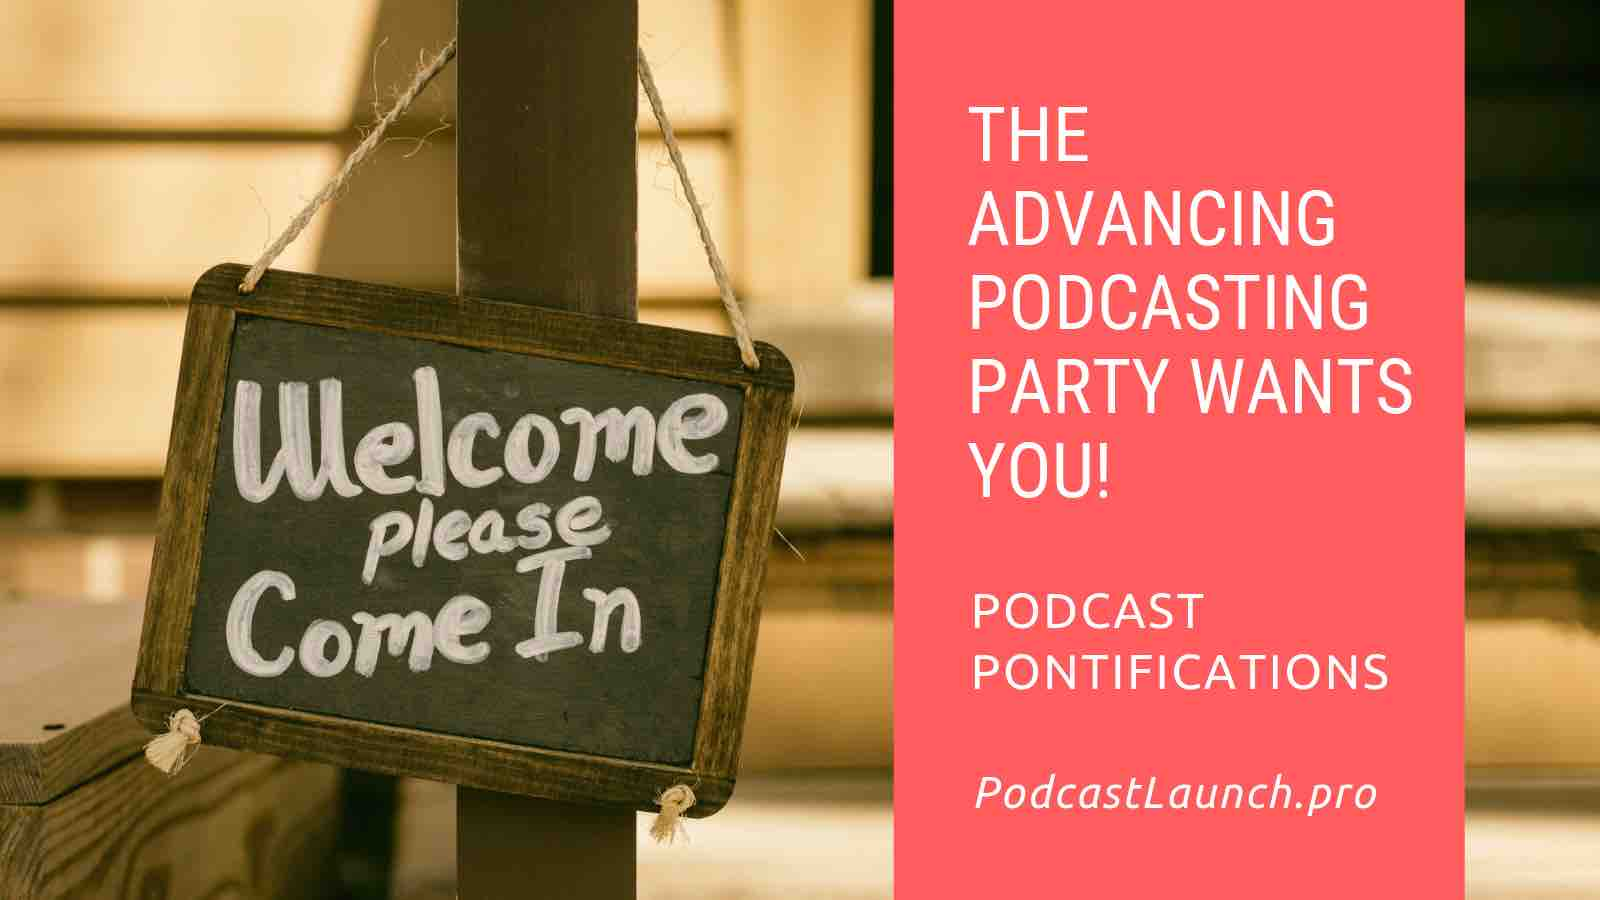 The Advancing Podcasting Party Wants YOU!